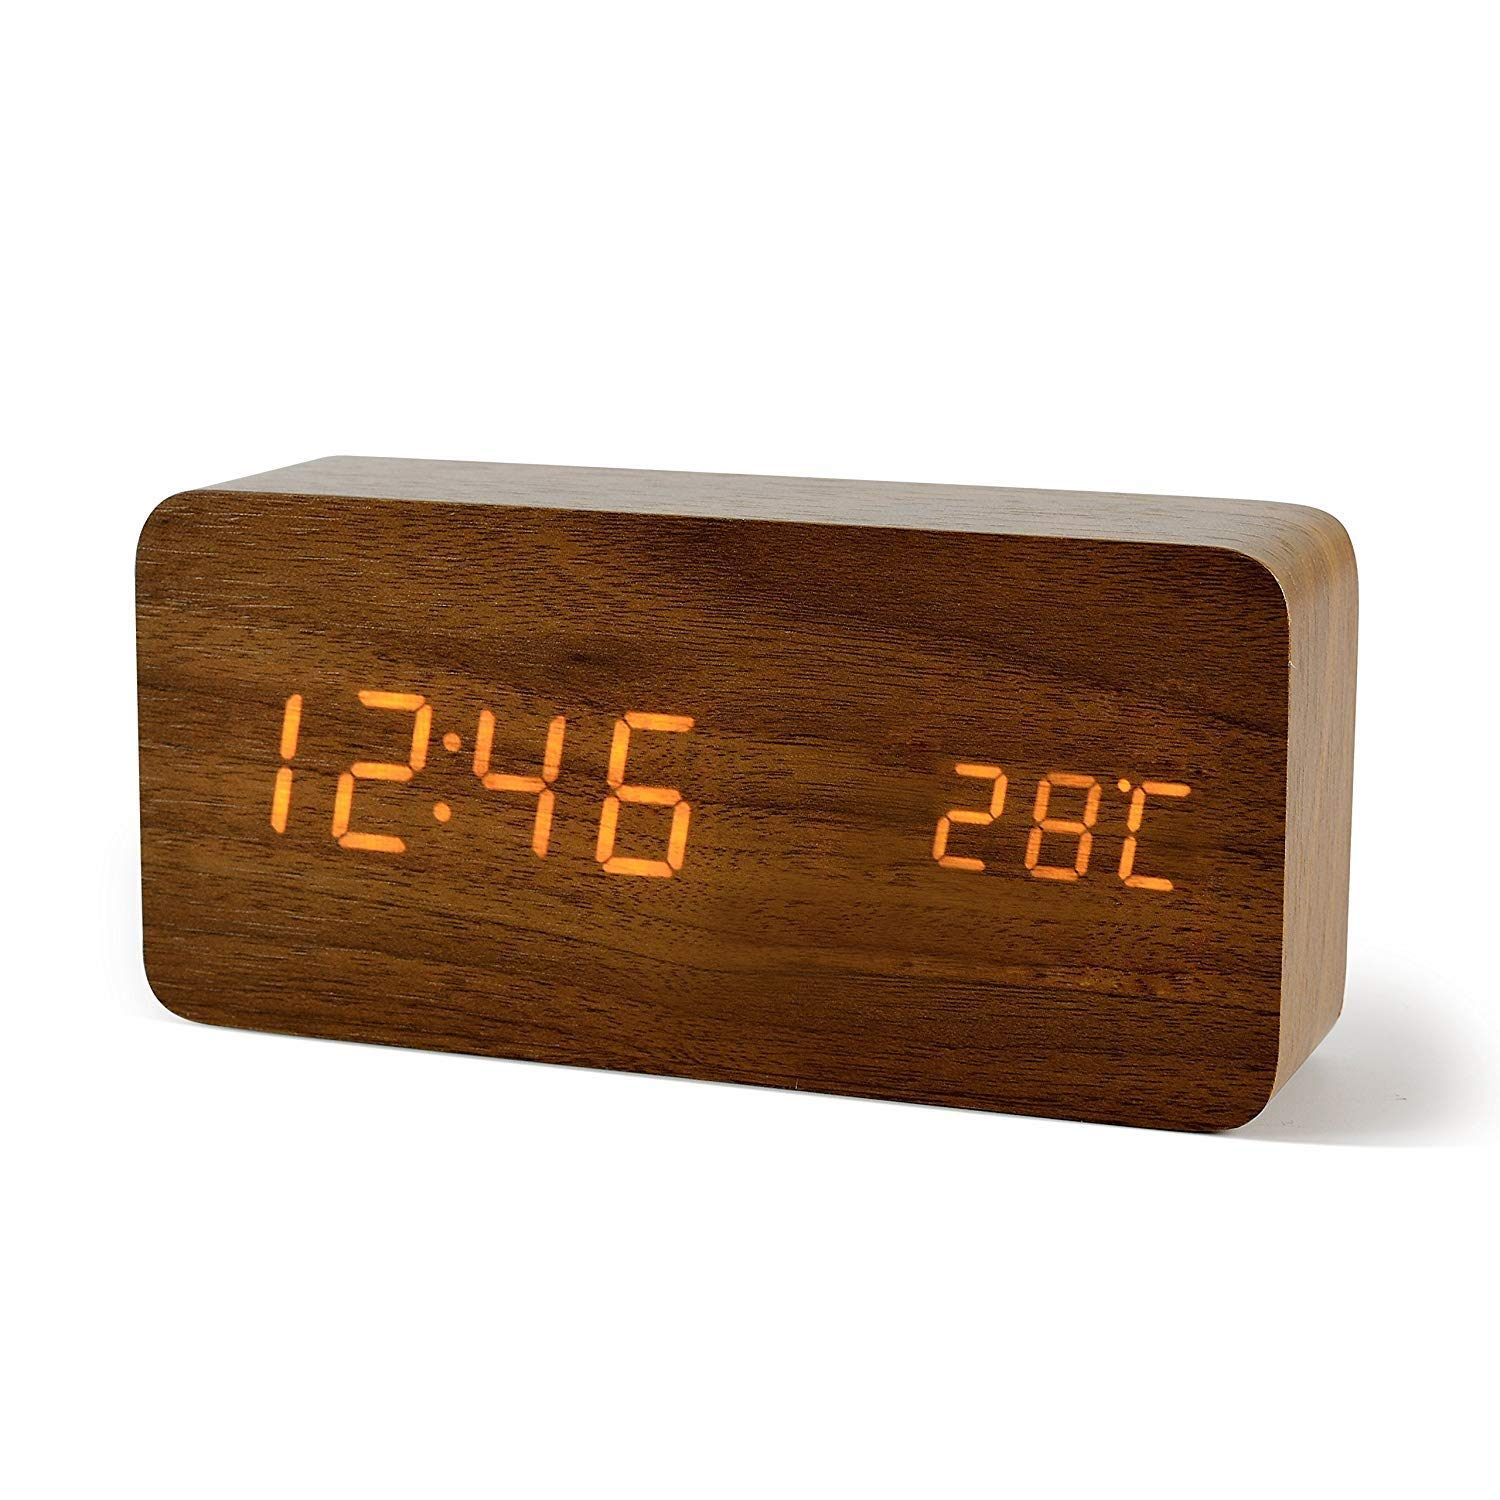 URayTech Desk Clock Rechargeable Digital Alarm Clock small Wood LED Clock Date/Temperature Display Walnut